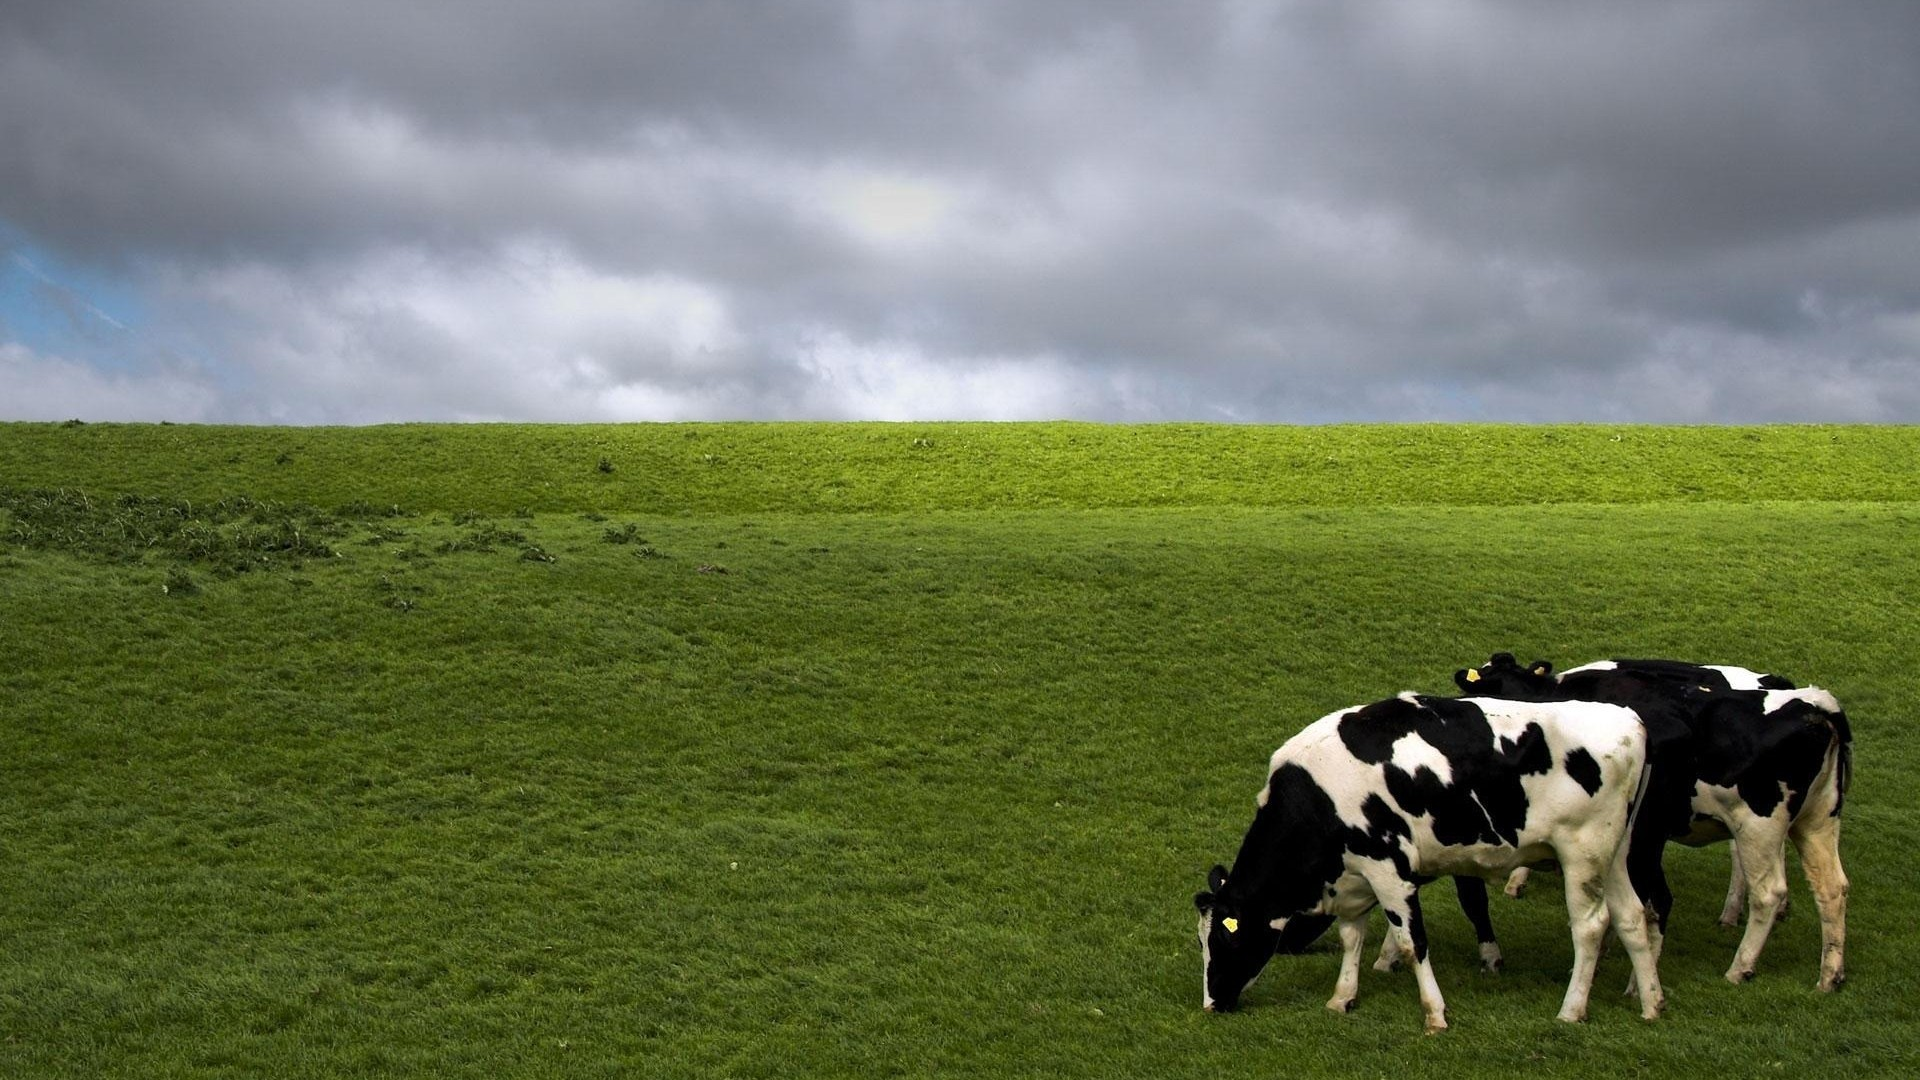 Cow Wallpaper and Background